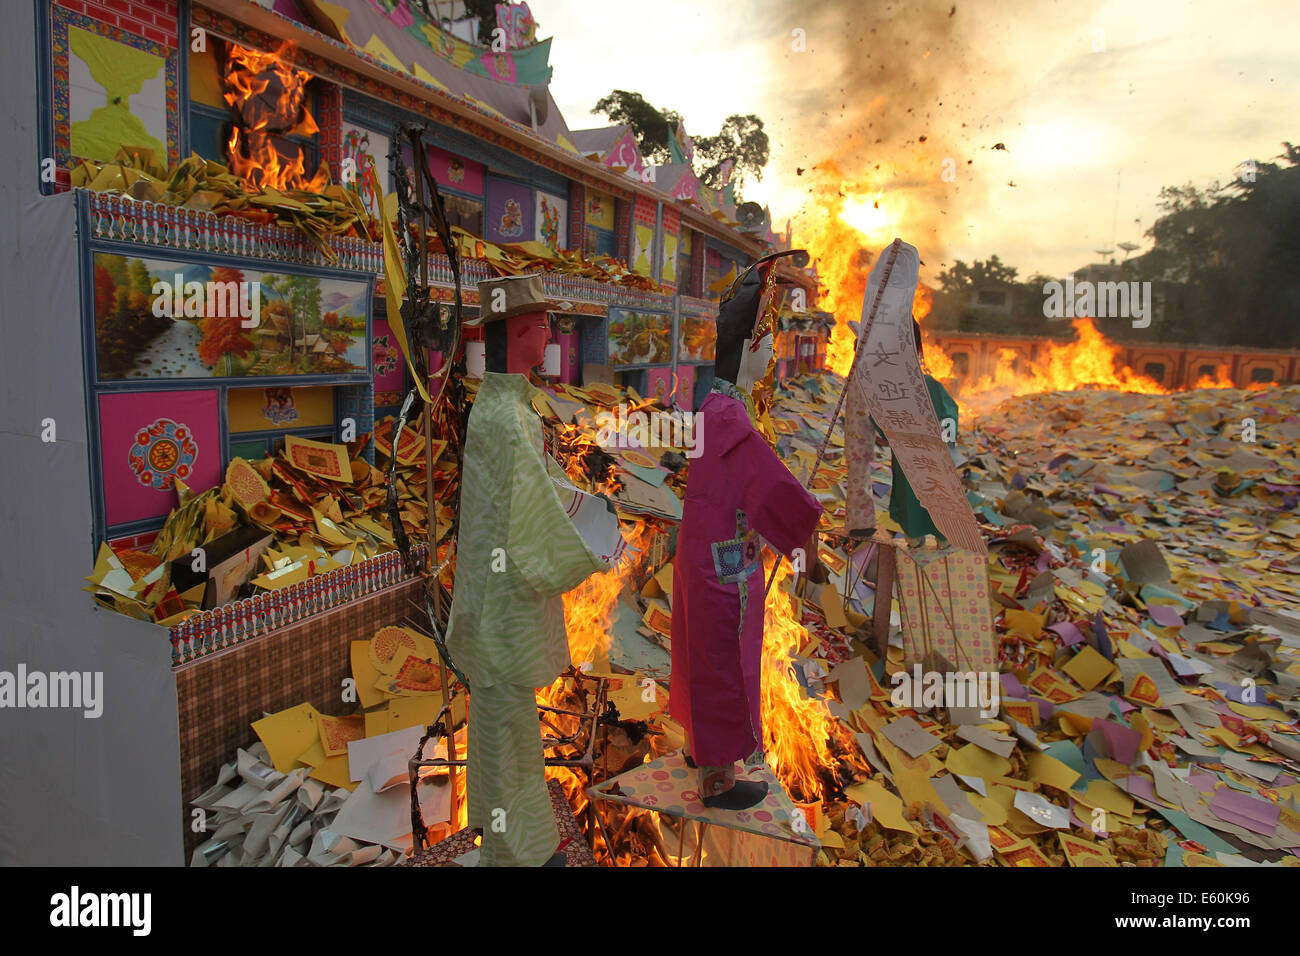 Medan, Indonesia. 10th Aug, 2014. Incense paper is burnt to honor people's ancestors during the Hungry Ghost Festival Stock Photo